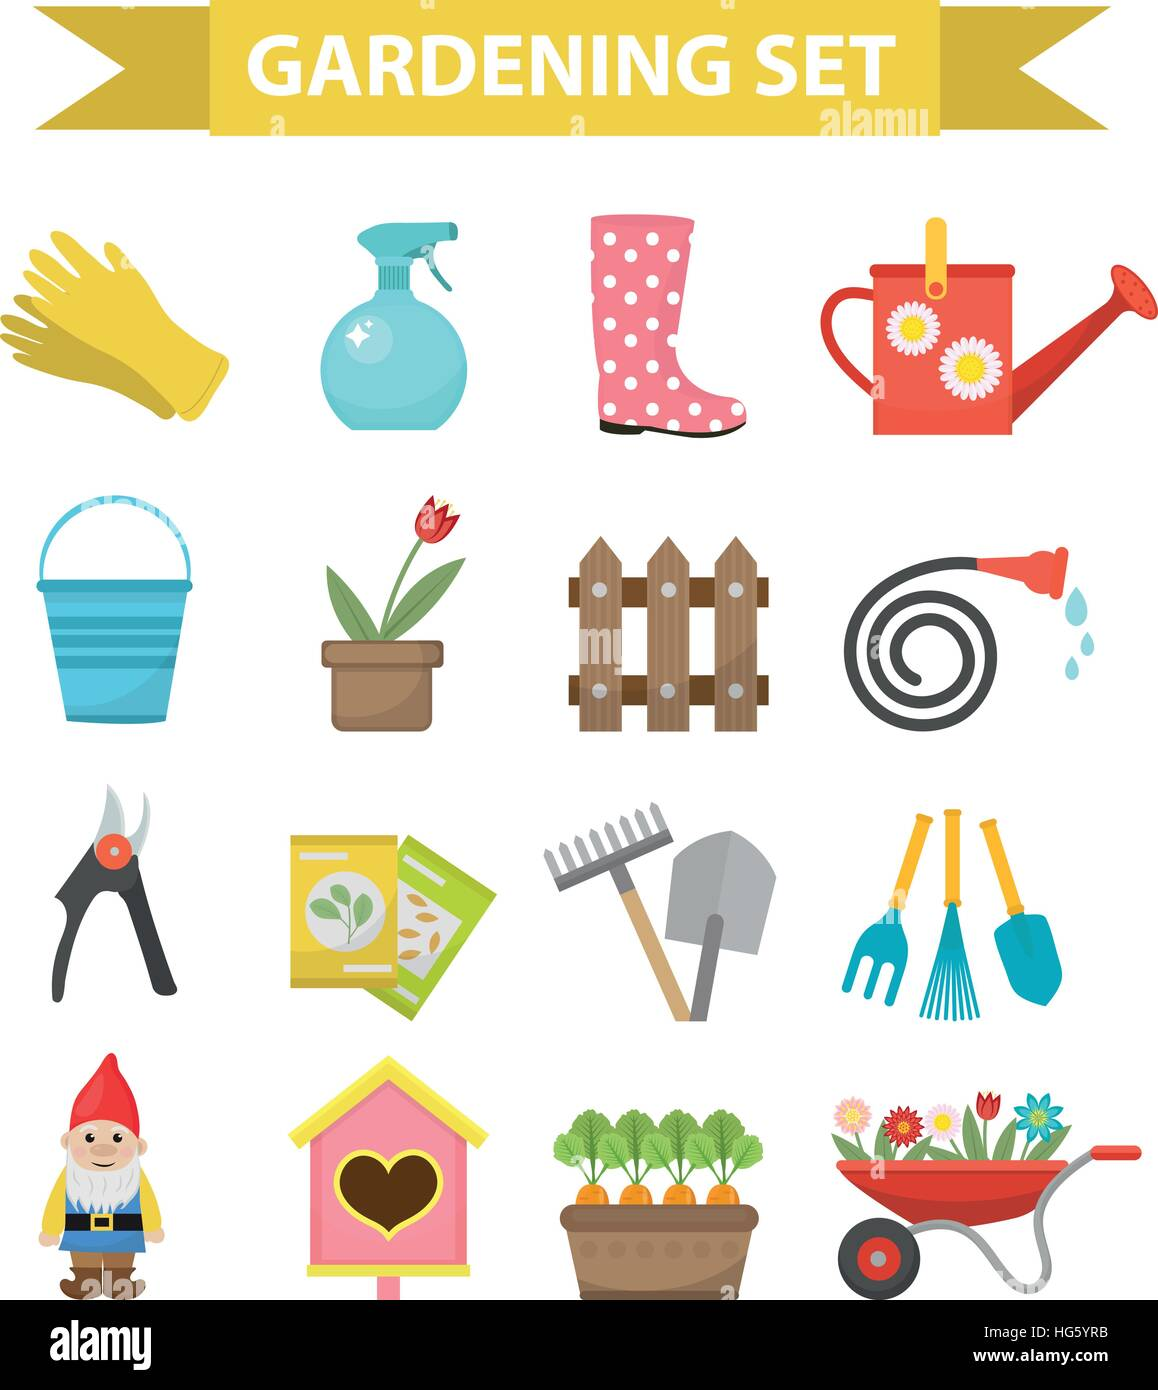 Gardening icon set flat style garden and orchard collection tools stock vector art - Must tools small garden orchard ...